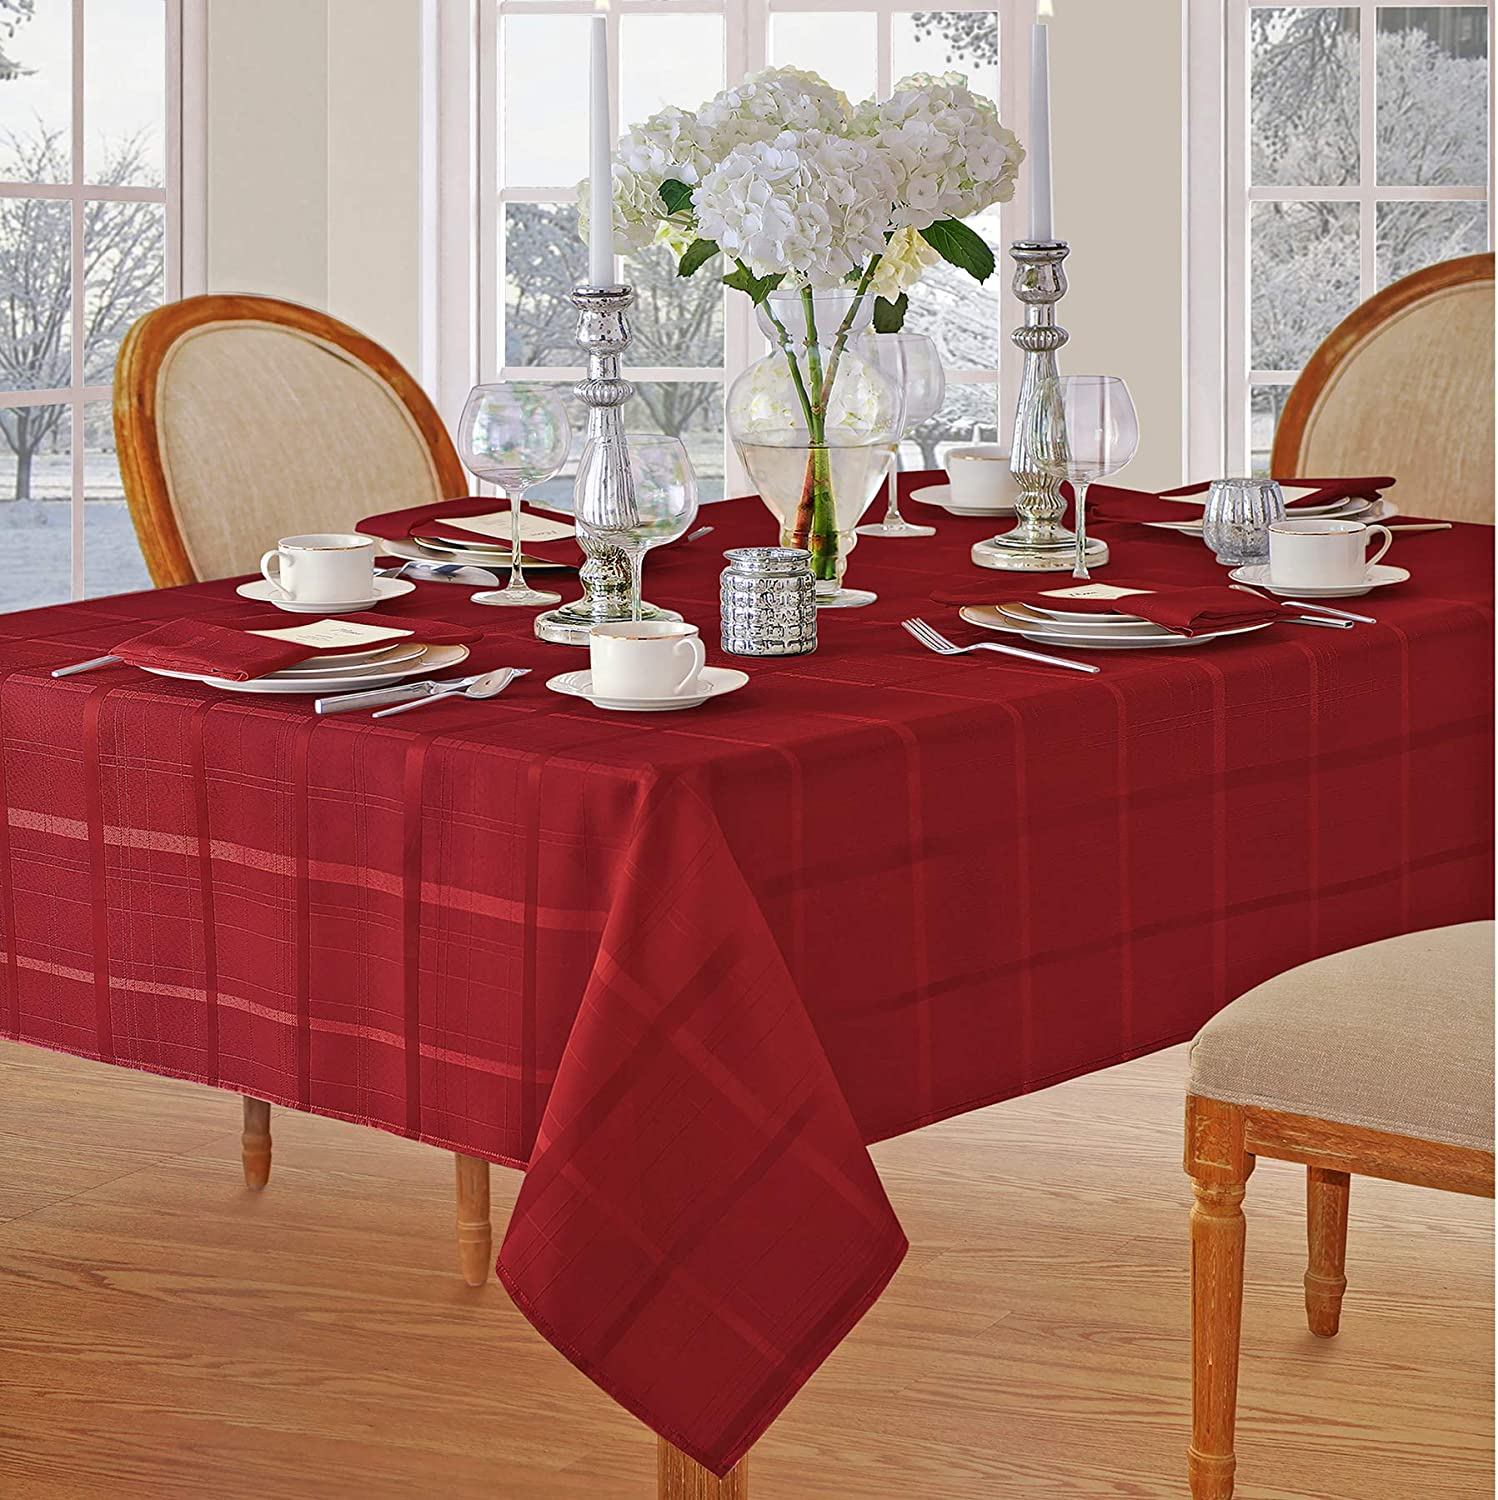 Elegance Plaid Christmas Fabric Tablecloth by Newbridge, 100% Polyester, No Iron, Soil Resistant Holiday Tablecloth, 52 Inch x 70 Inch Oblong/Rectangle, Poinsettia Red